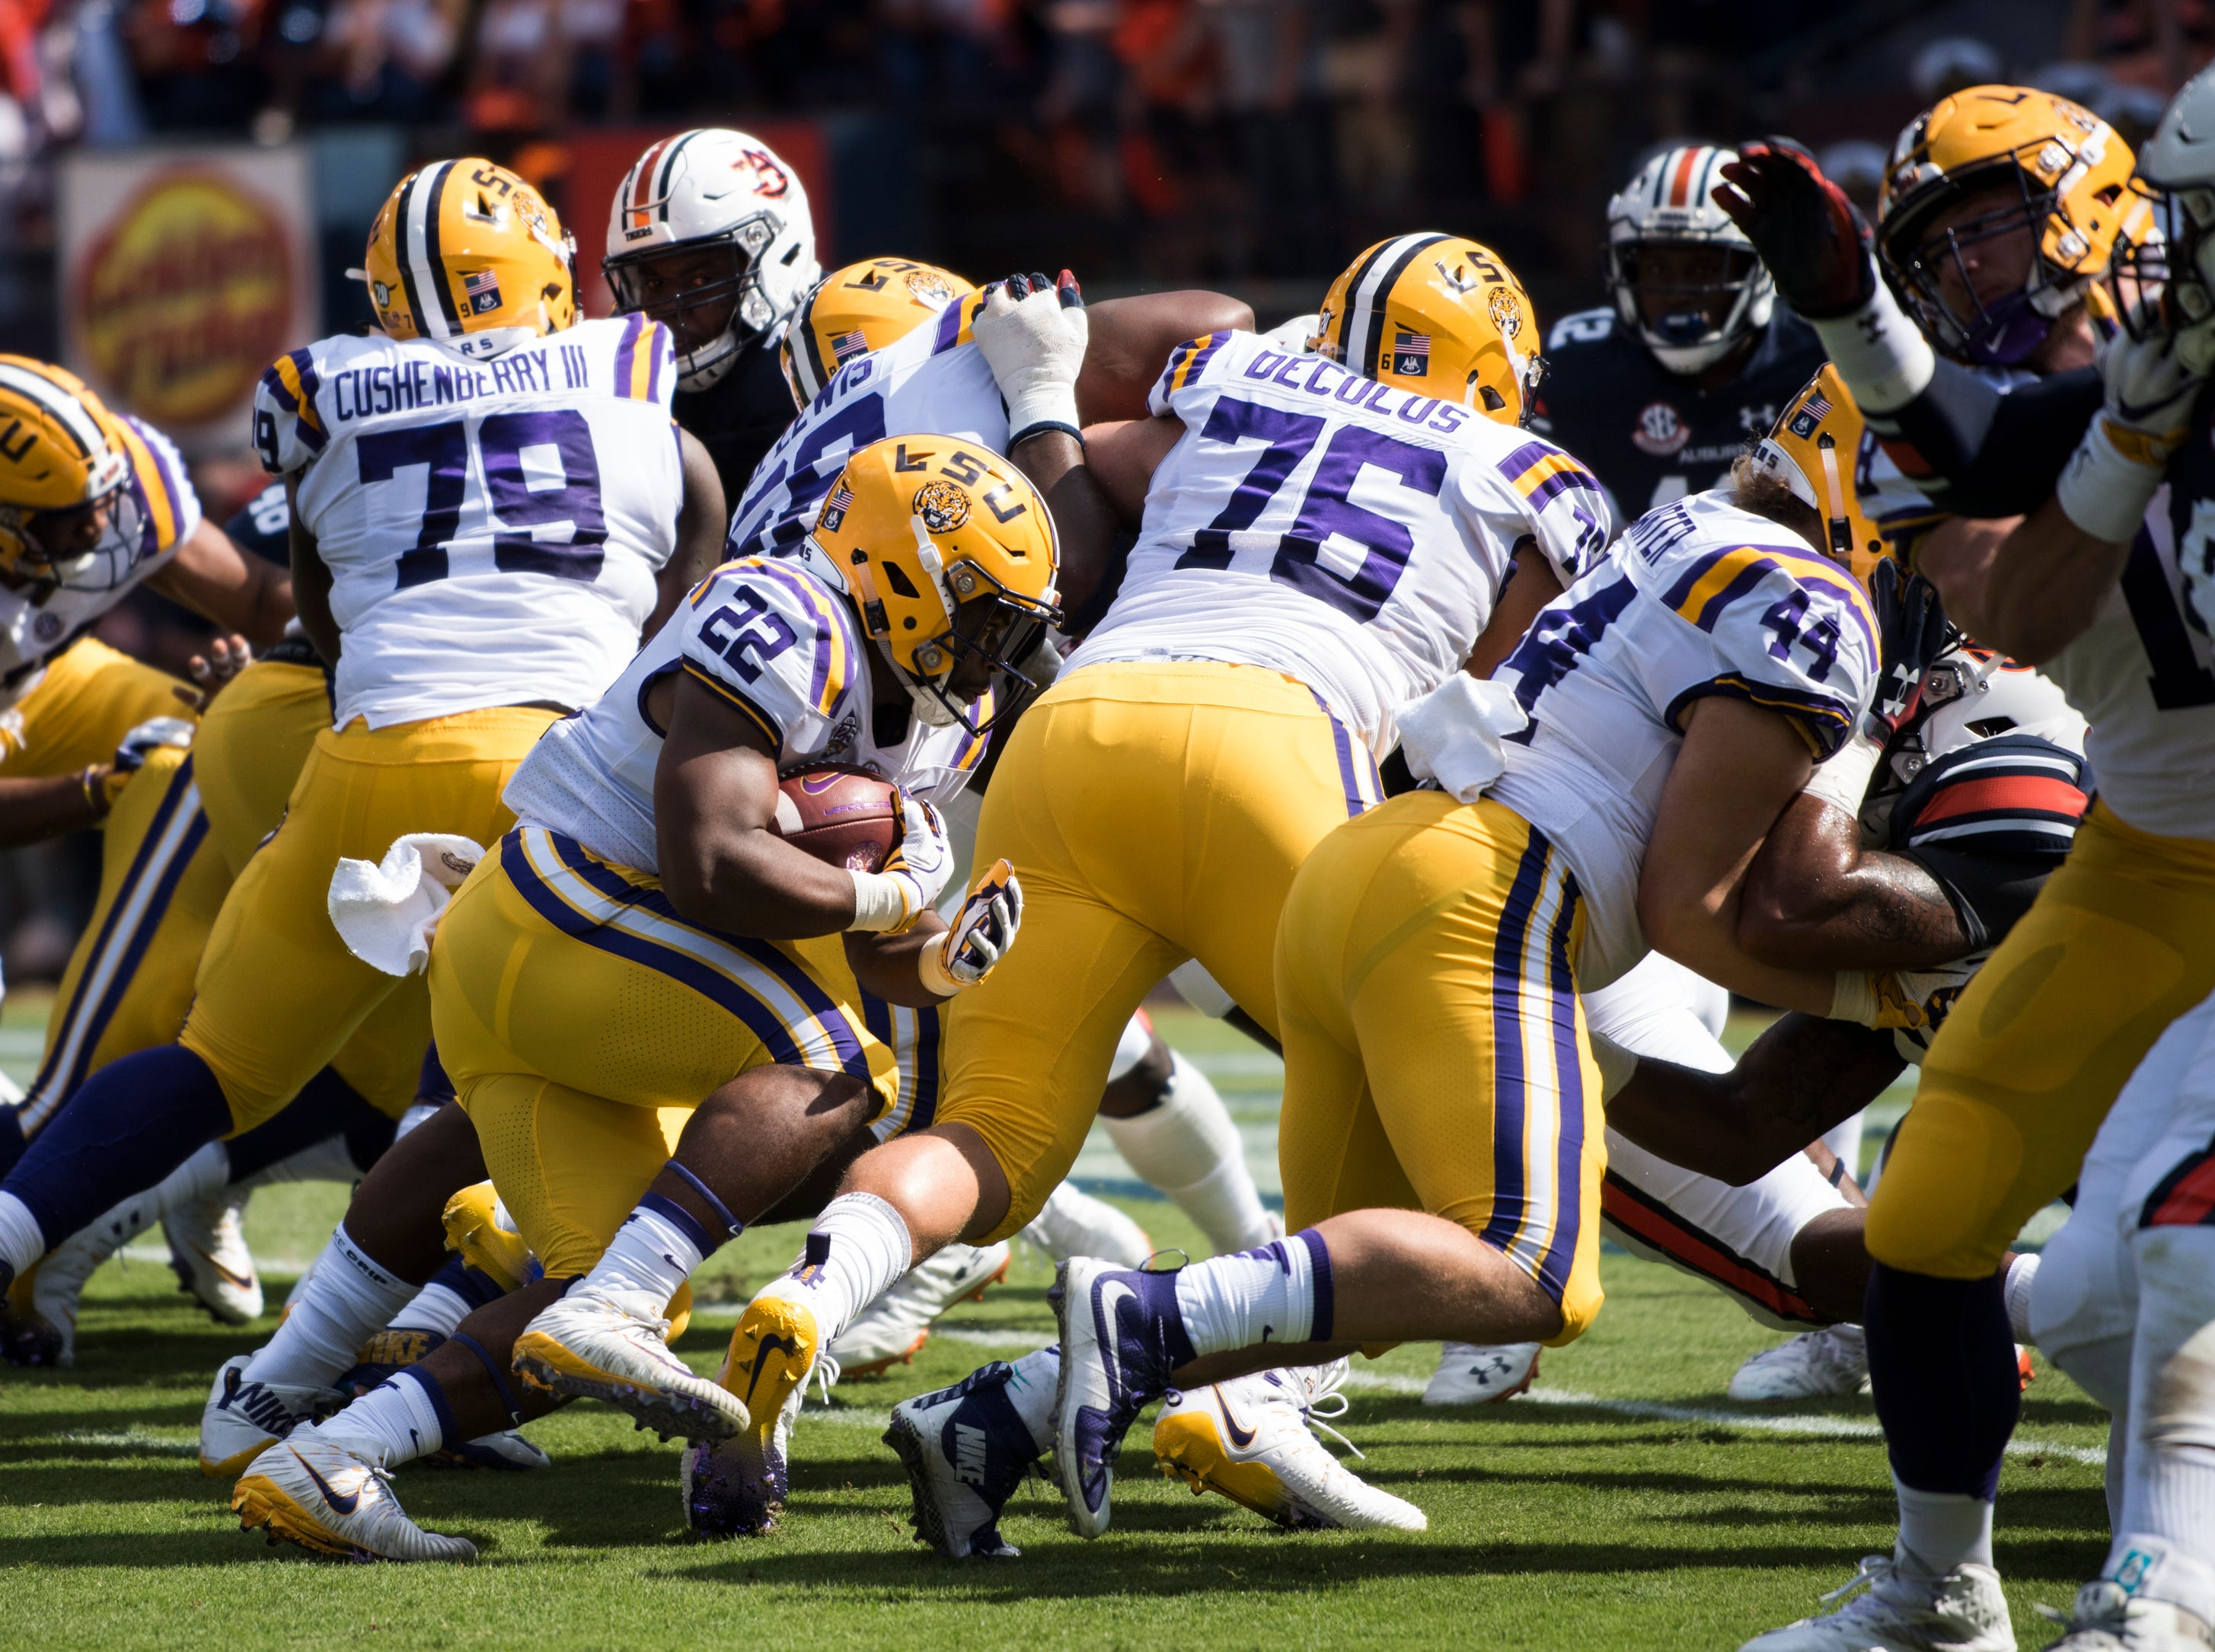 LSU's Clyde Edwards-Helaire (22) pushes behind his line for a touchdown run against  Auburn at Jordan-Hare Stadium in Auburn, Ala., on Saturday, Sept. 15, 2018. Auburn leads LSU 14-10 at halftime.